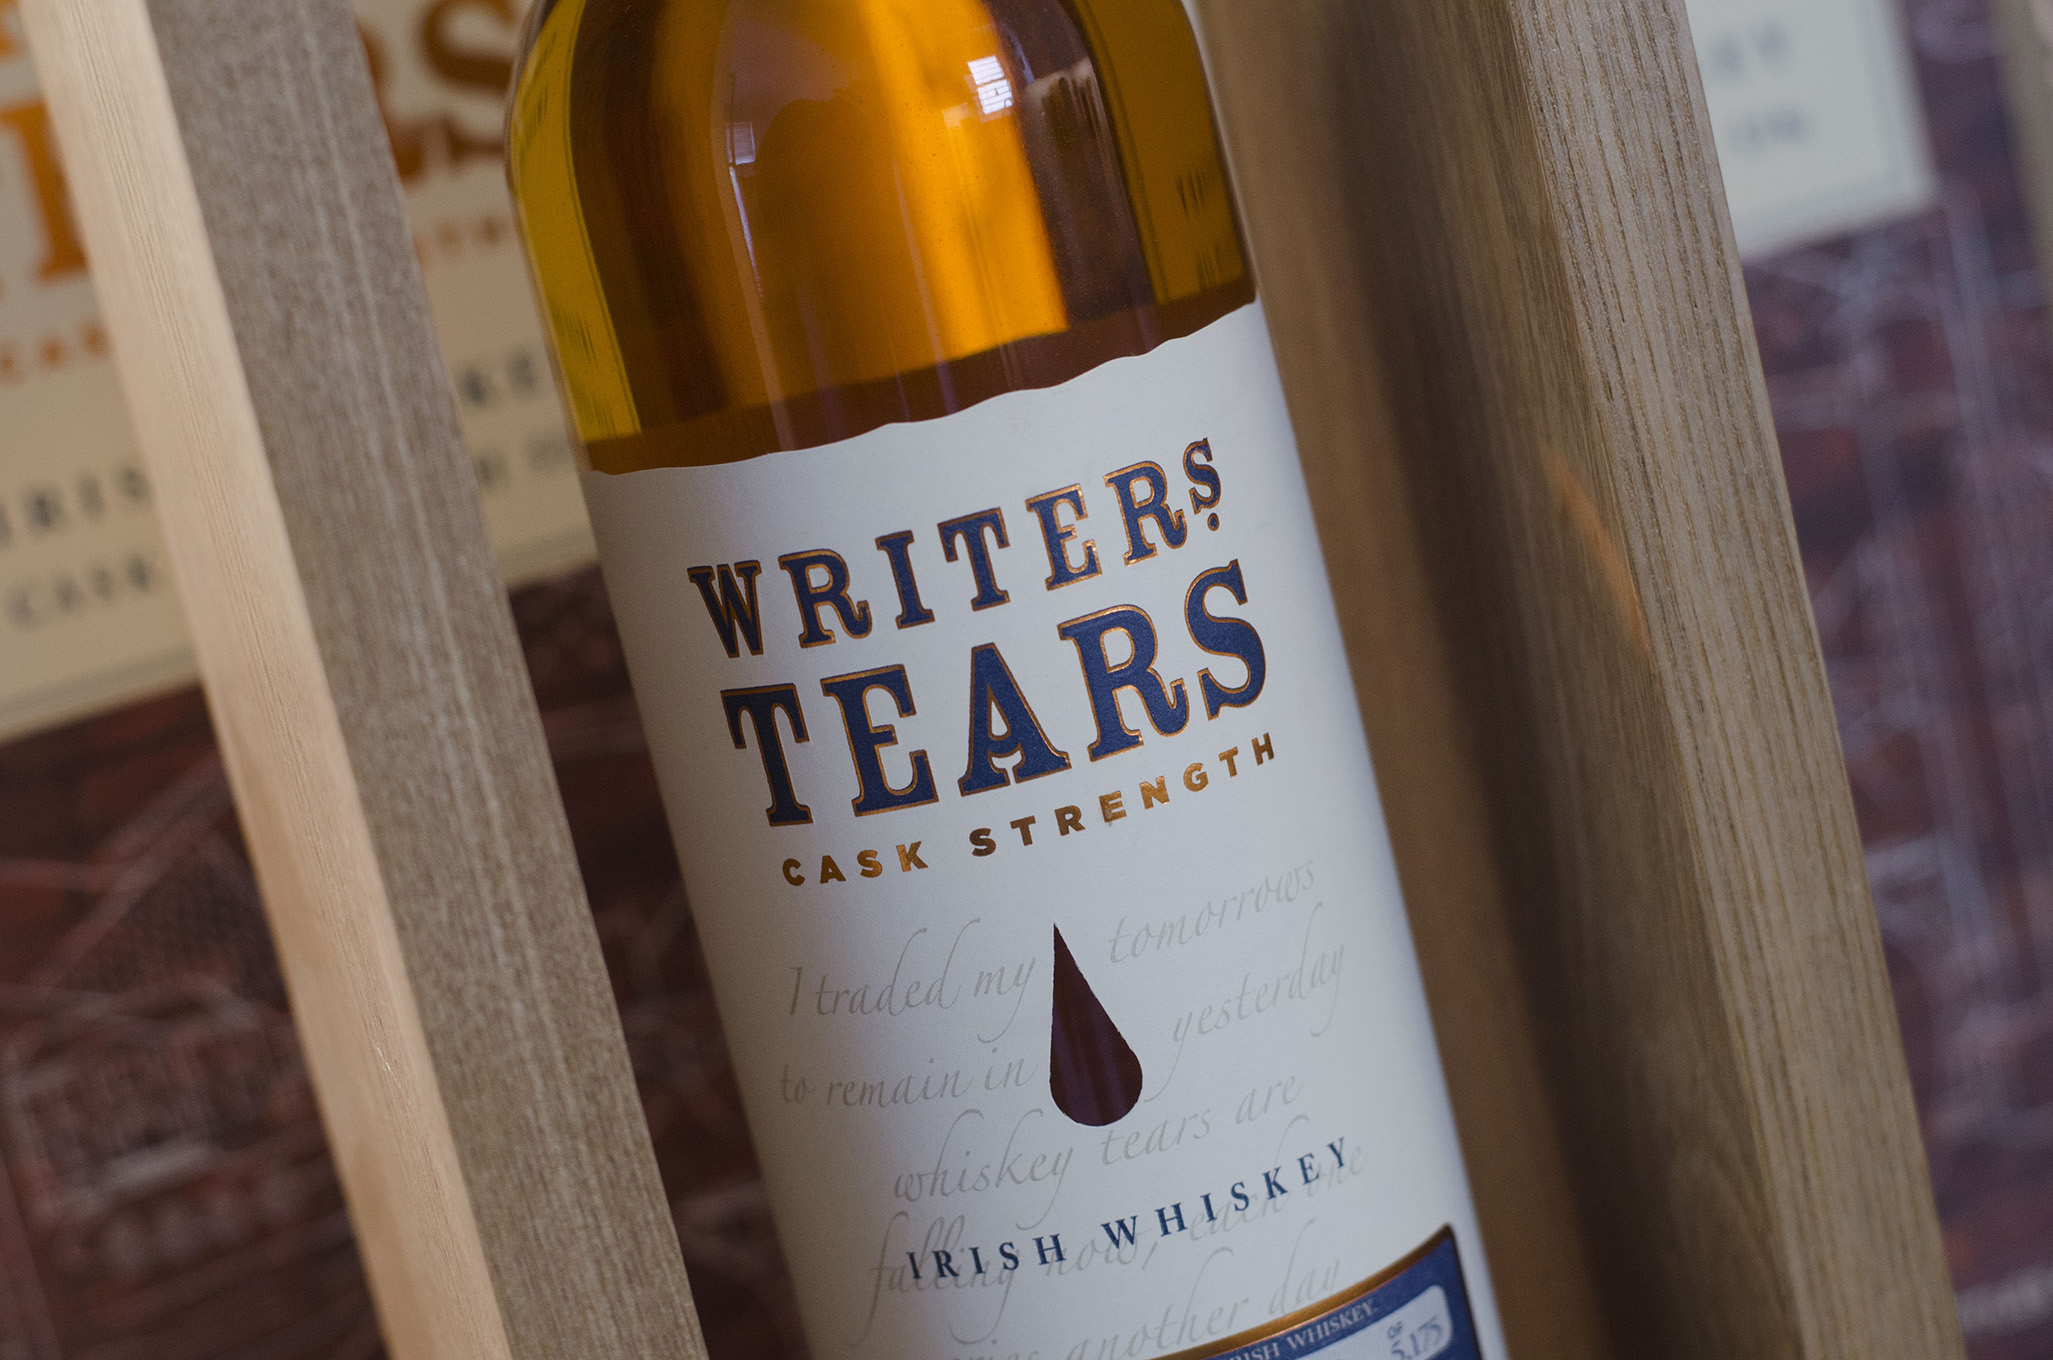 Writer's Tears Cask Strength Irish whiskey served at the 2019 Whiskytown Festival in Windsor, Ontairo.